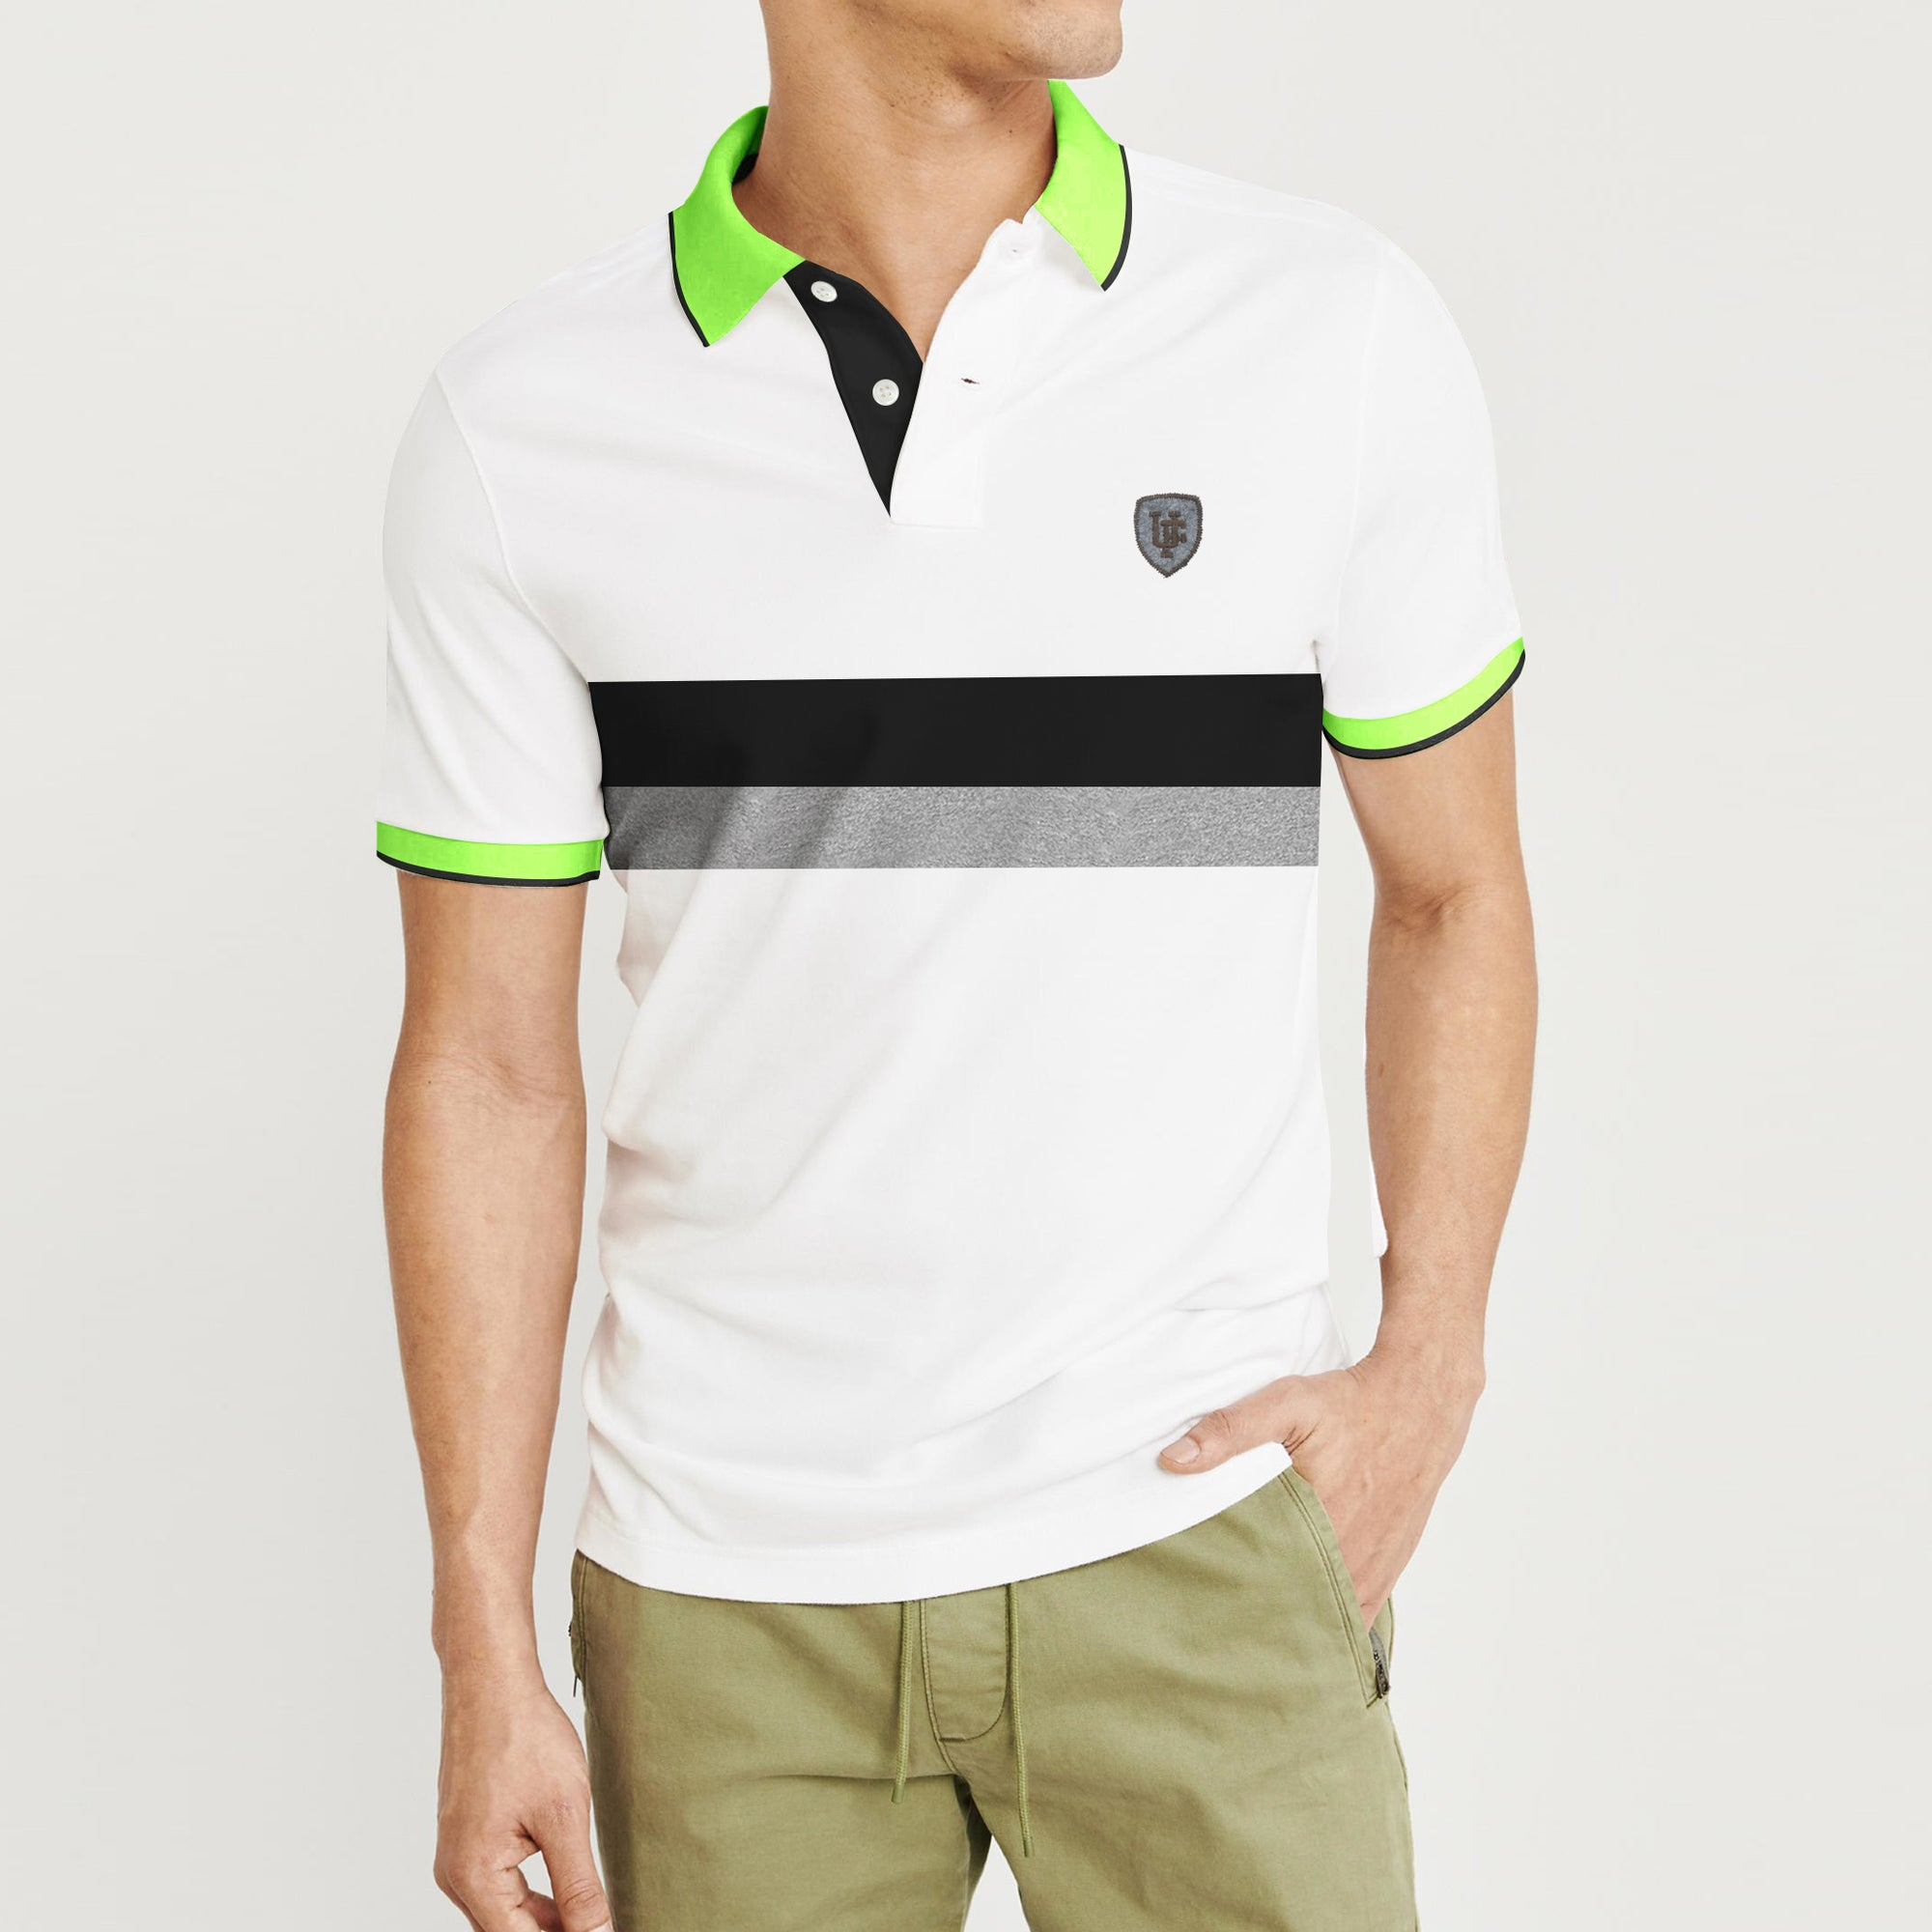 POLO Classic Short Sleeve P.Q Polo Shirt For Men-White with Stripe-BE8621